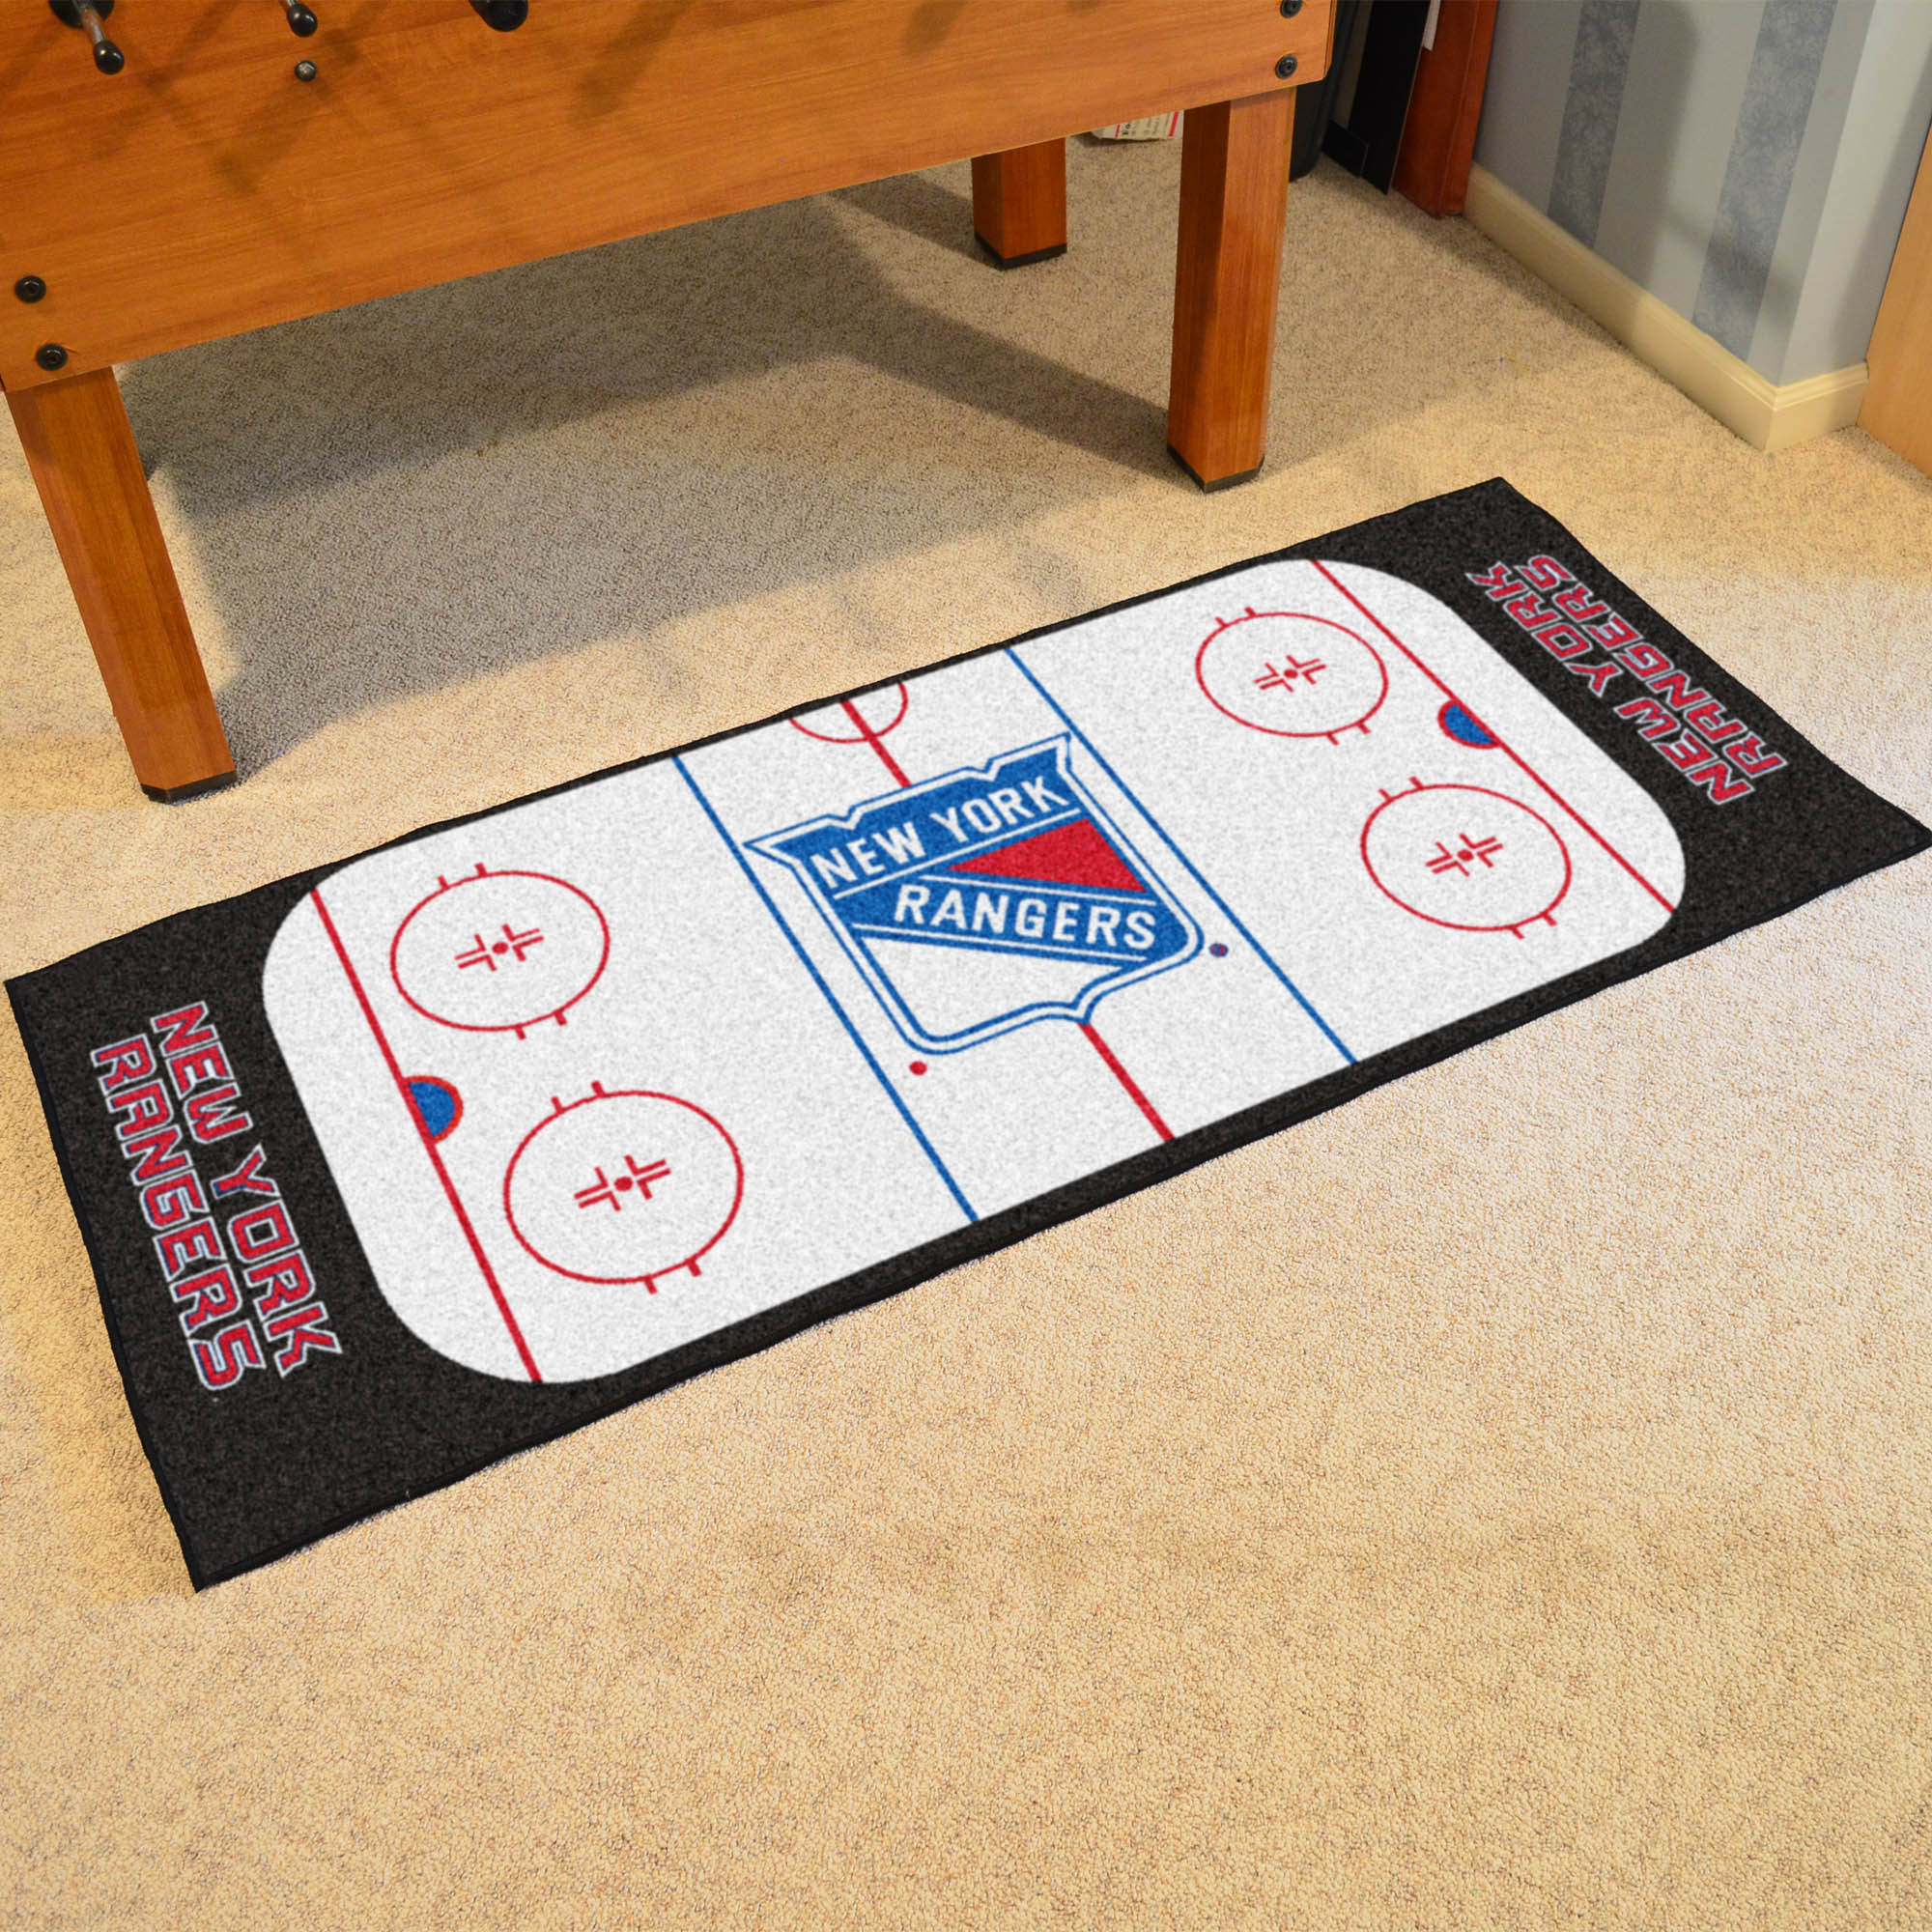 New York Rangers 30 x 72 Hockey Rink Carpet Runner